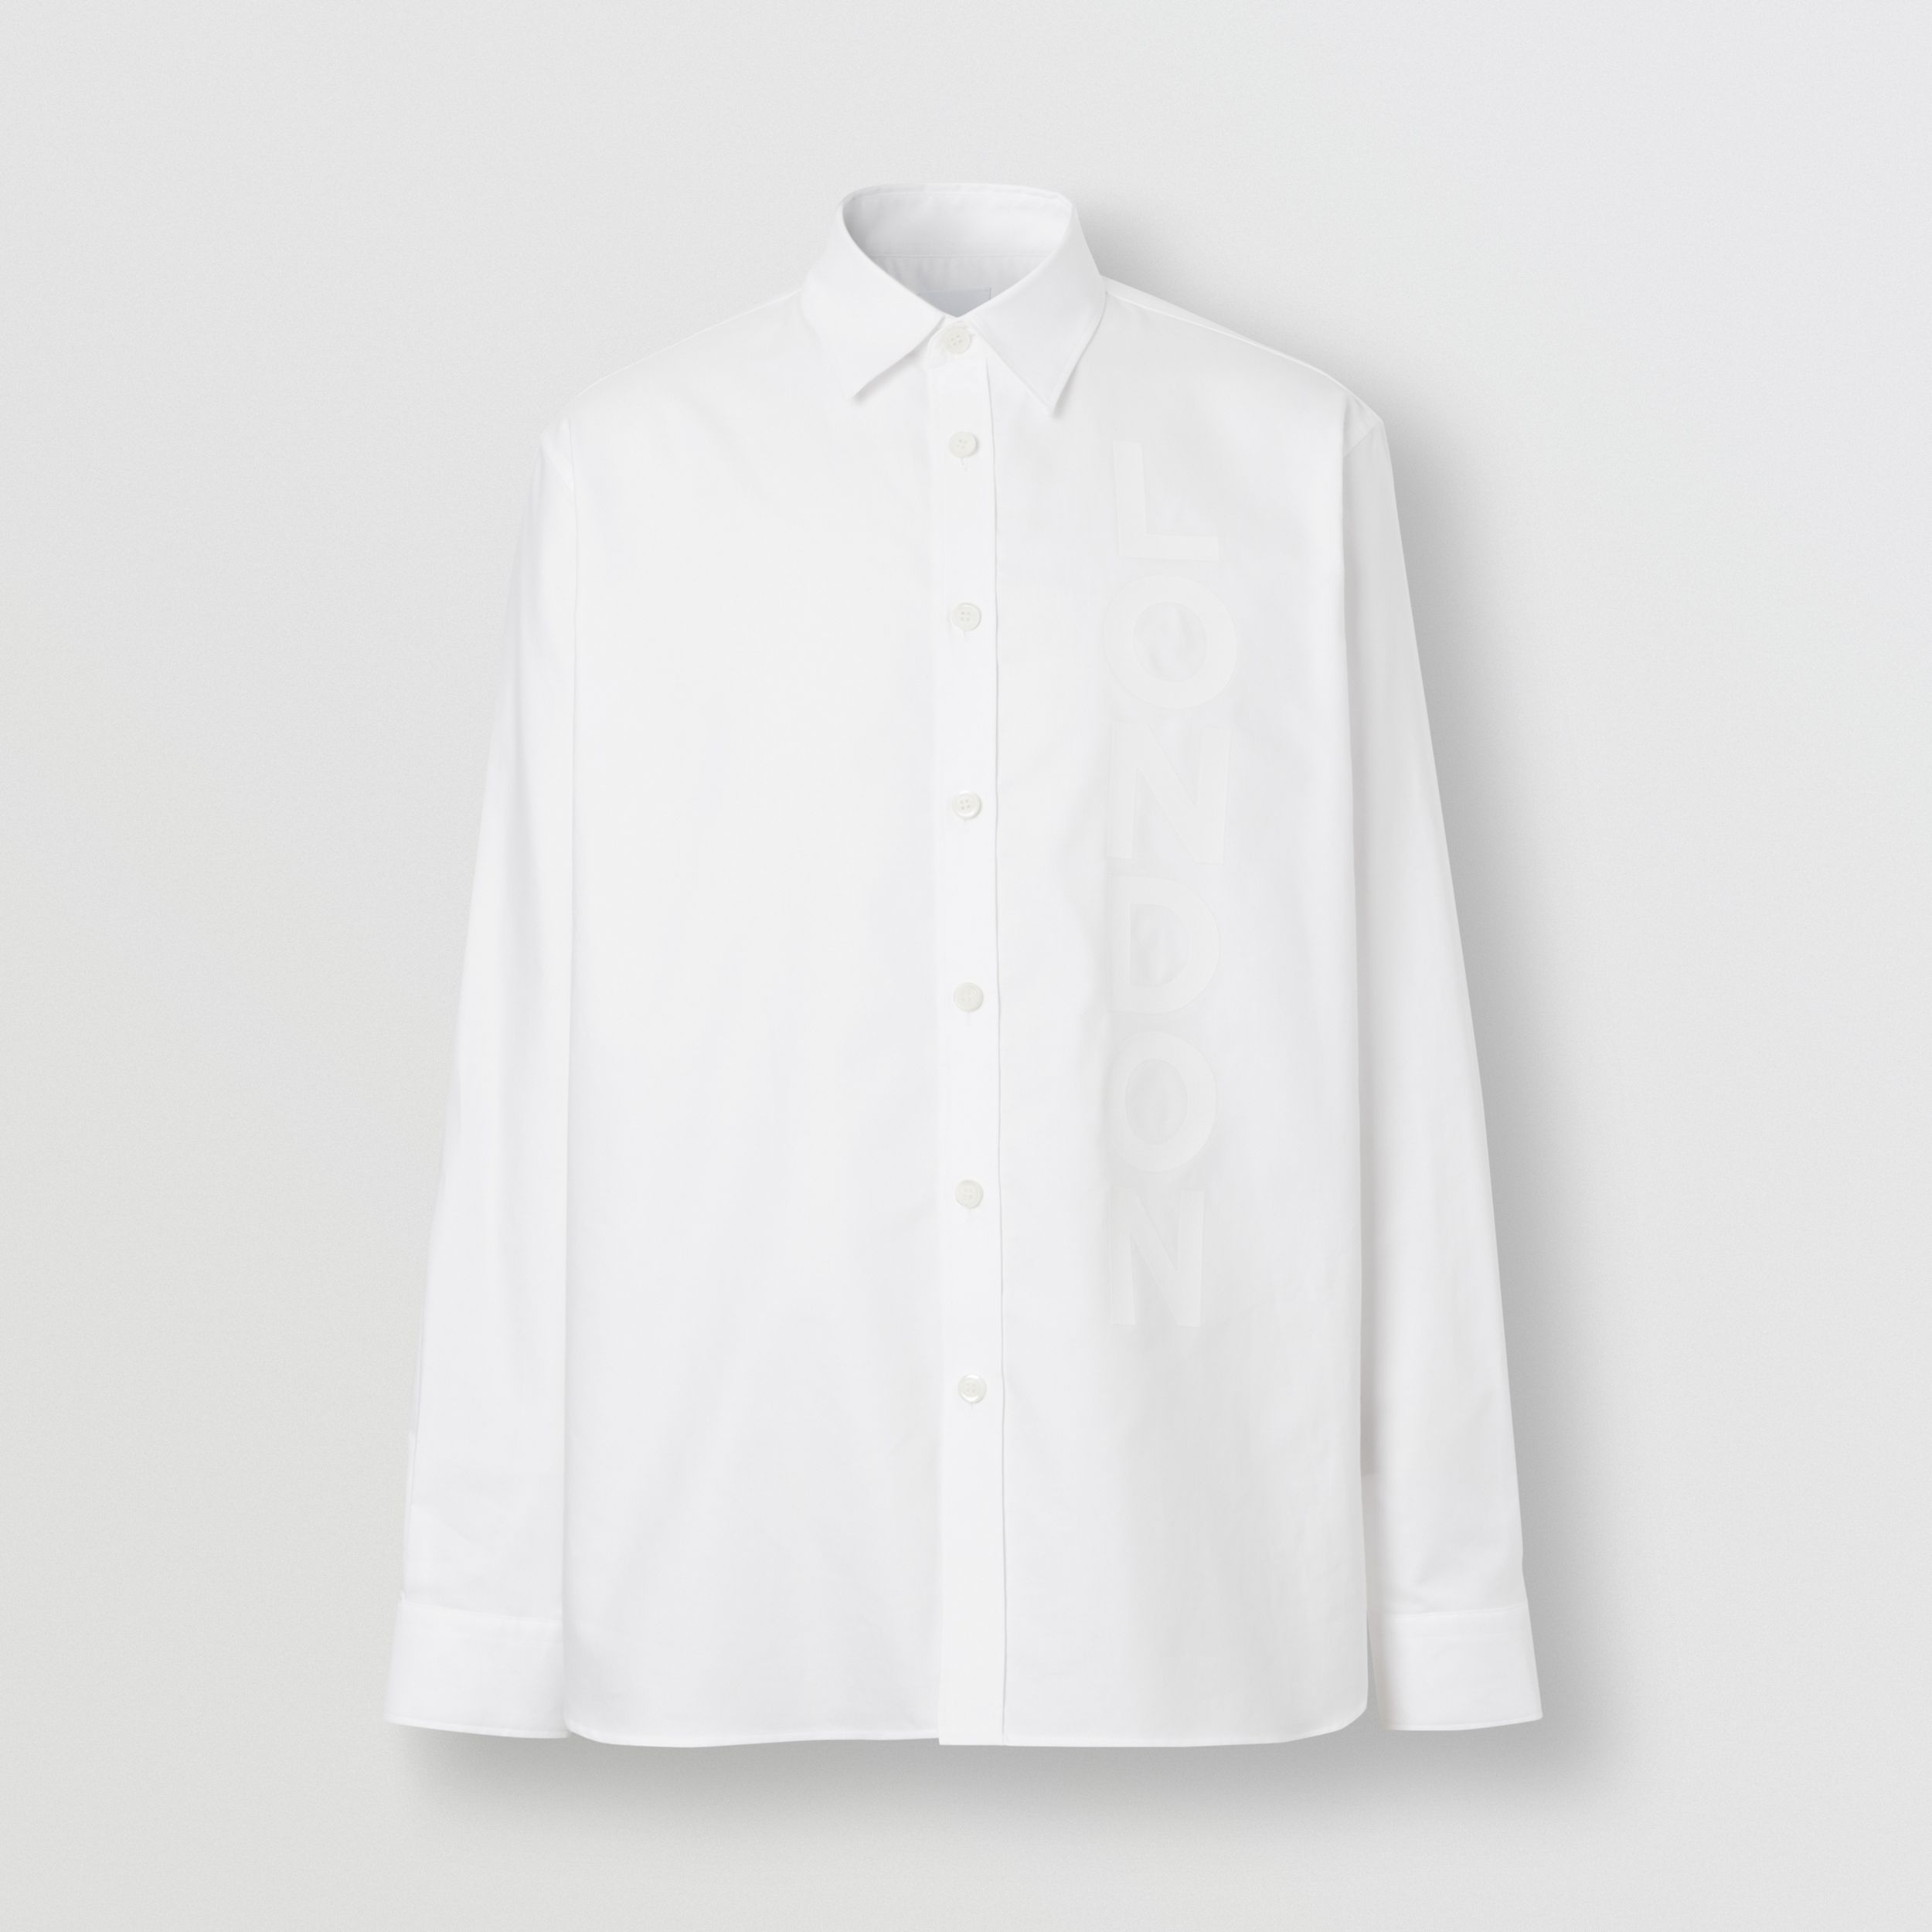 London Print Cotton Oxford Oversized Shirt in White - Men | Burberry - 4